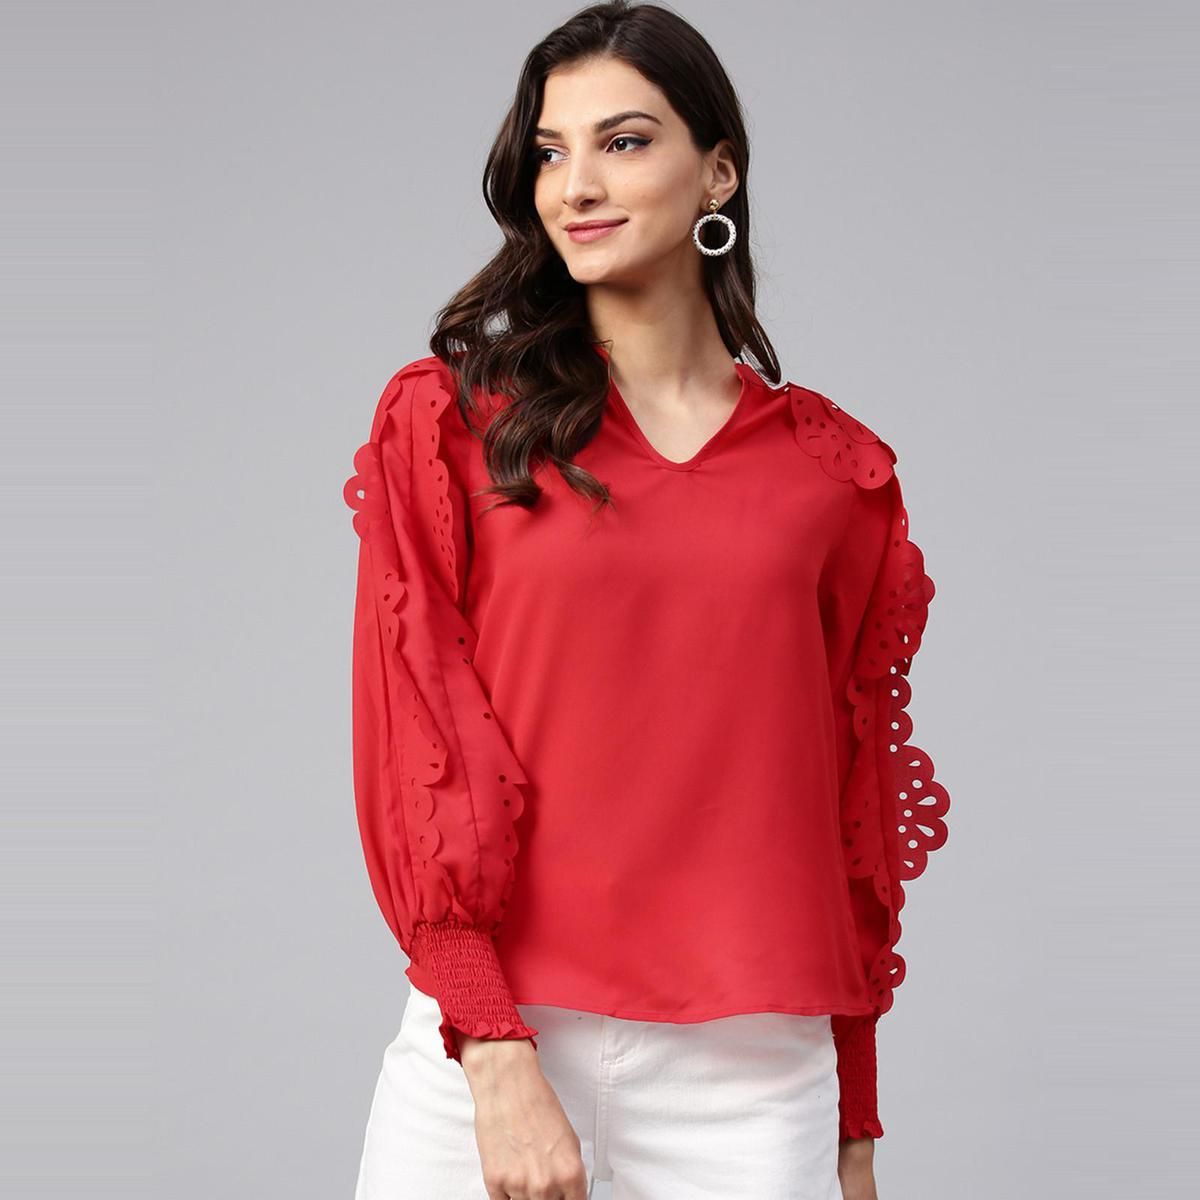 Zima Leto - Women's Solid Top With Laser Cut Sleeves